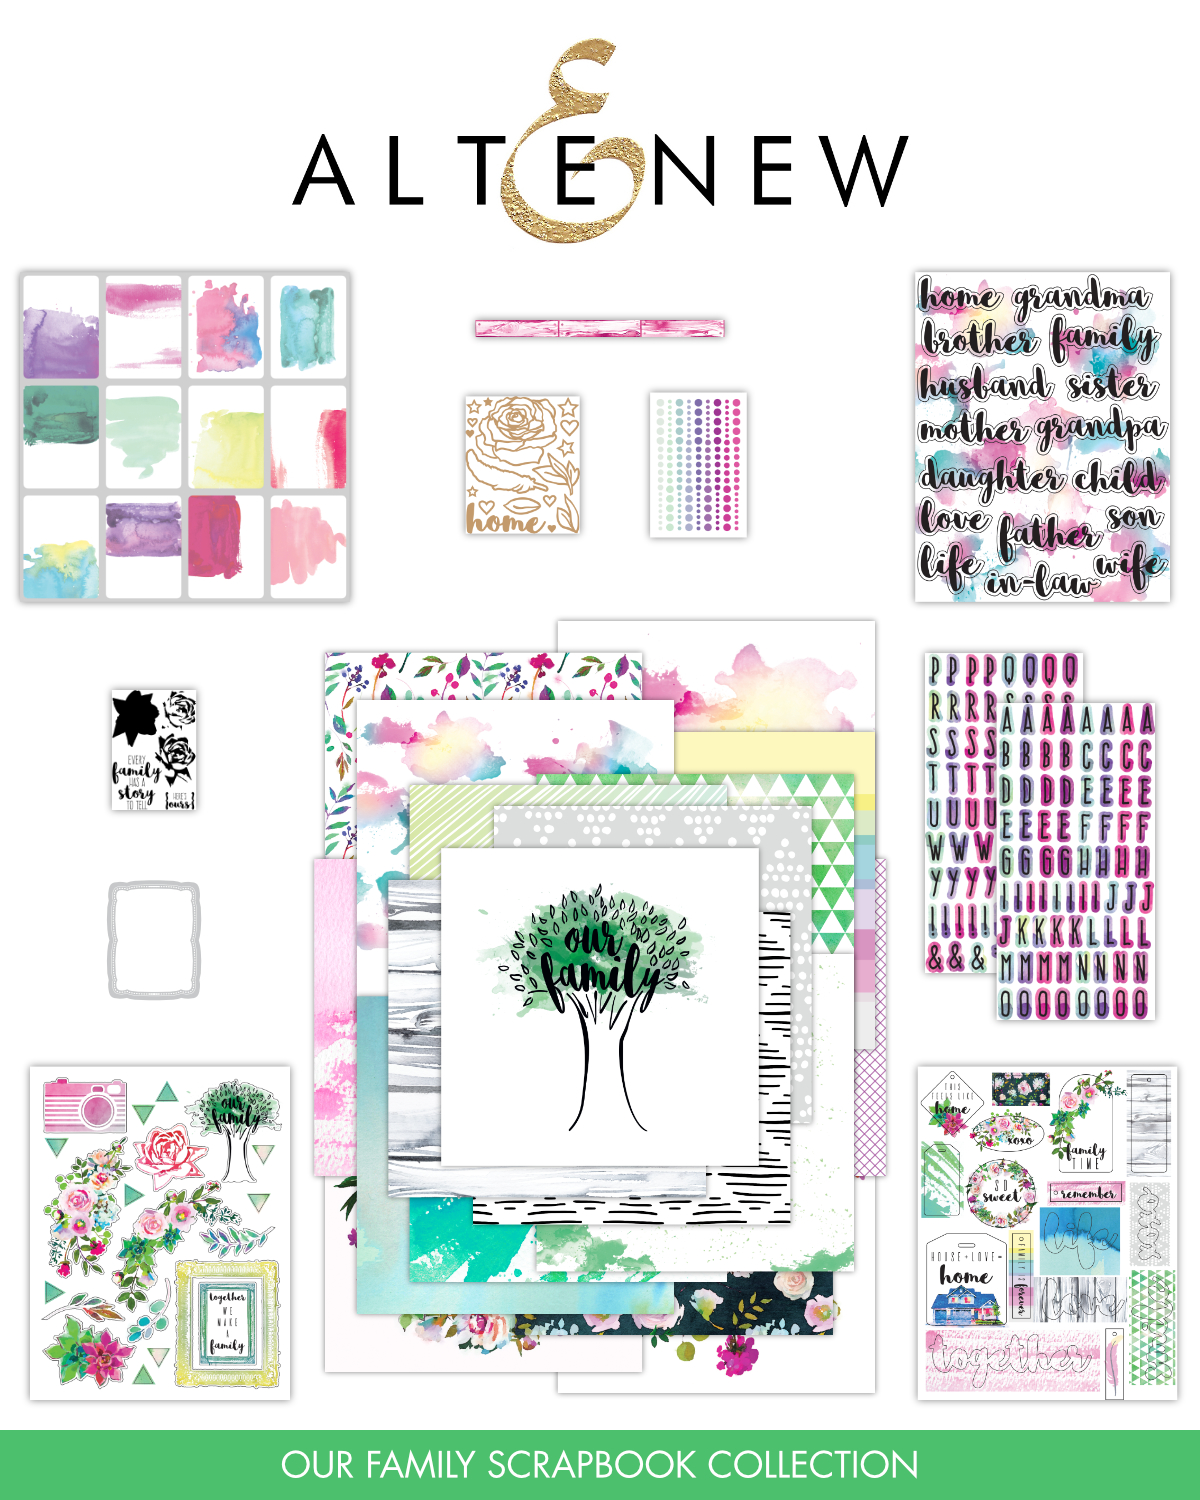 http://altenew.com/products/our-family-scrapbook-collection